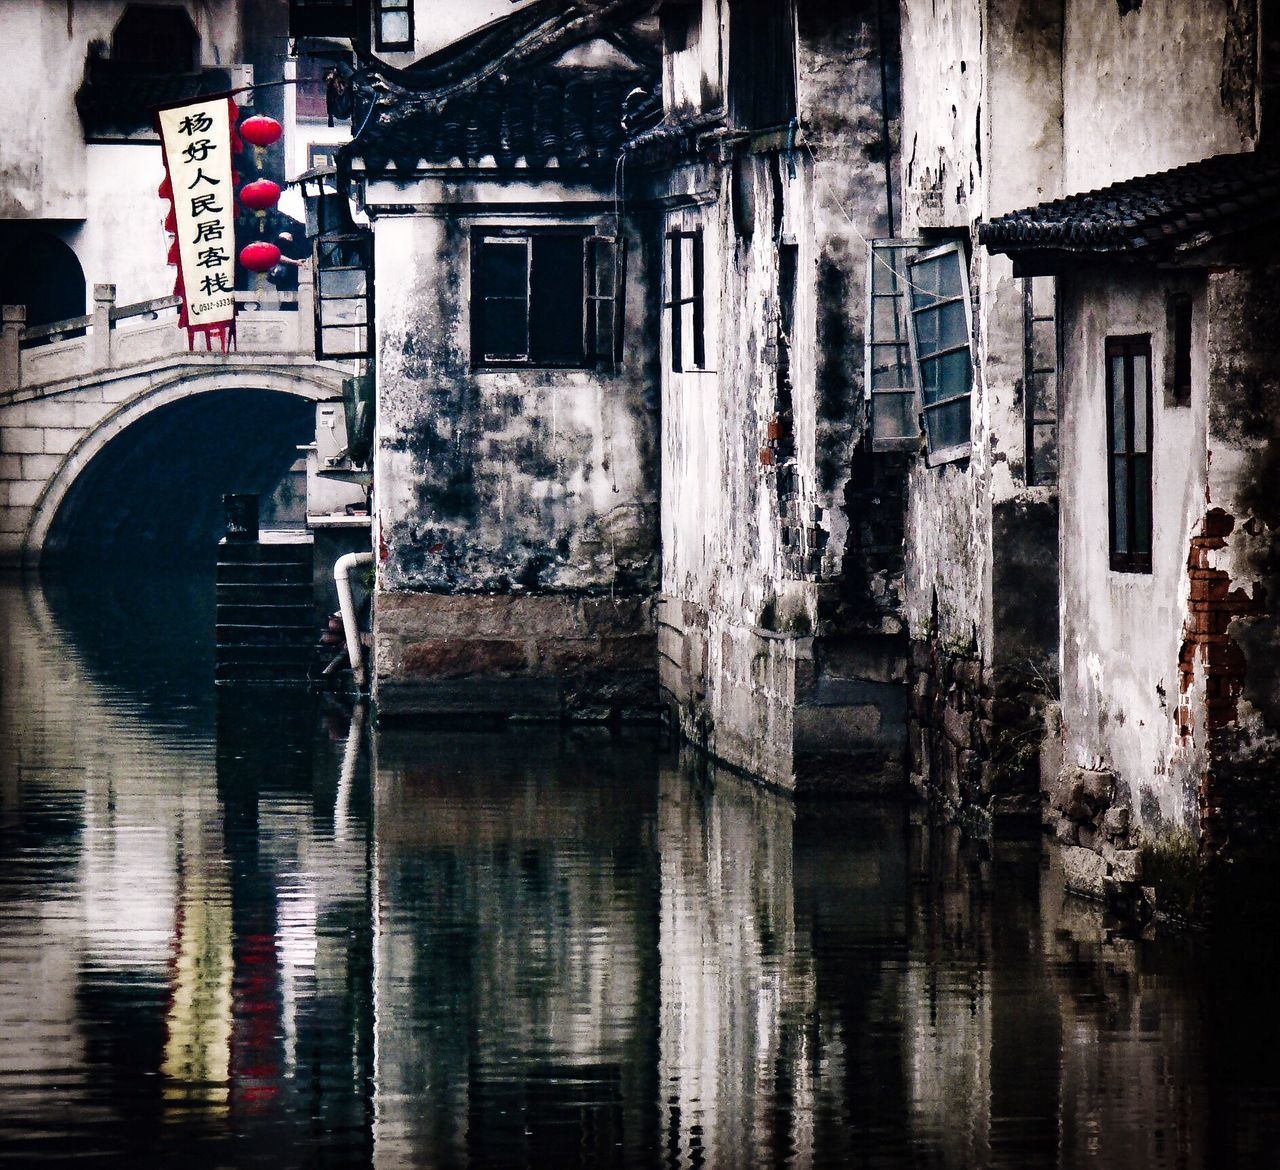 Architecture Built Structure Building Exterior Water Reflection Day Waterfront Outdoors No People China Photos China Watertown Pittoresque Fragility Spooky Atmosphere Old Buildings Old Town Old House Tongli Shanghai